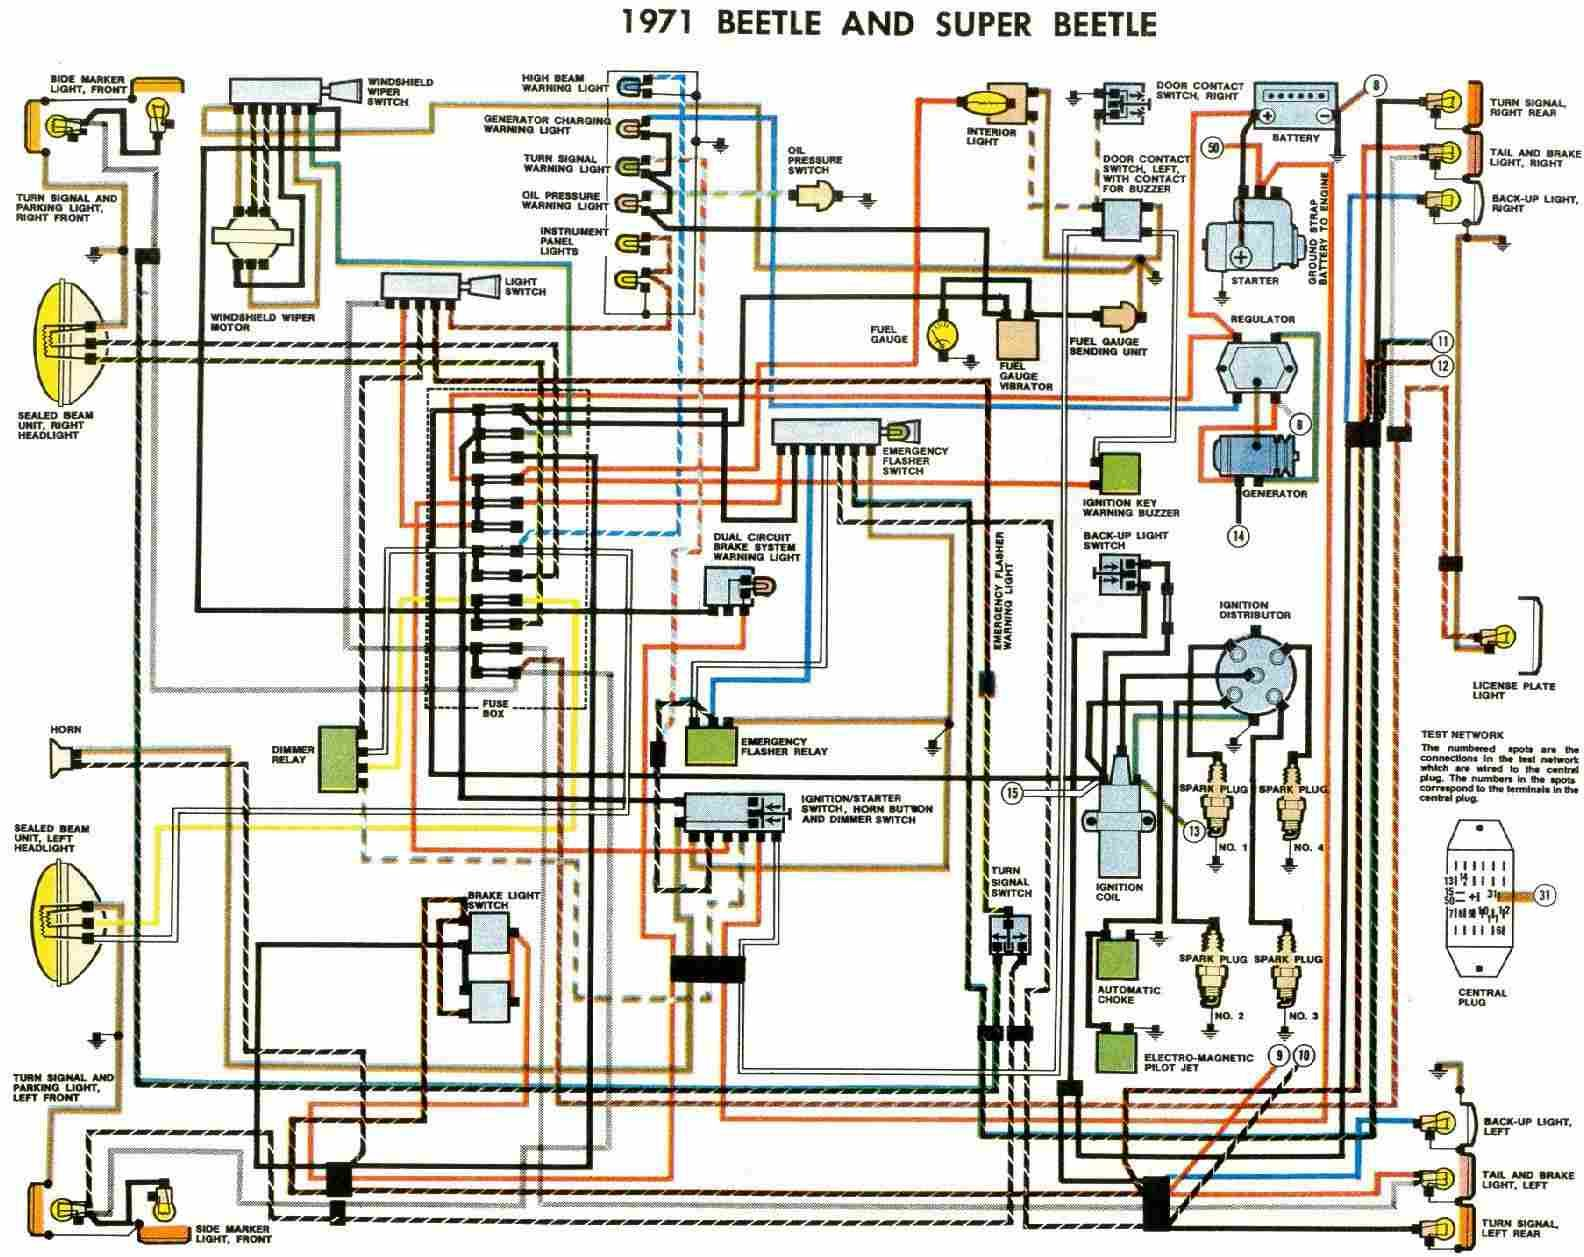 1971 Vw Super Beetle Generator Wiring 1973 vw beetle wiring ... Vw Type Wiring Diagram on jaguar s type wiring diagram, vw type 1 maintenance, vw type 1 suspension, vw type 1 fuel pump, vw type 1 fuel gauge, vw type 1 exhaust, vw type 1 air conditioning, vw type 1 generator, vw type 1 fan belt, vw type 1 dimensions, vw type 1 body, vw type 1 flywheel, vw type 1 starter, vw type 1 brakes, vw type 1 wheels, vw type 1 frame, volkswagen type 3 wiring diagram, vw type 1 torque specs,